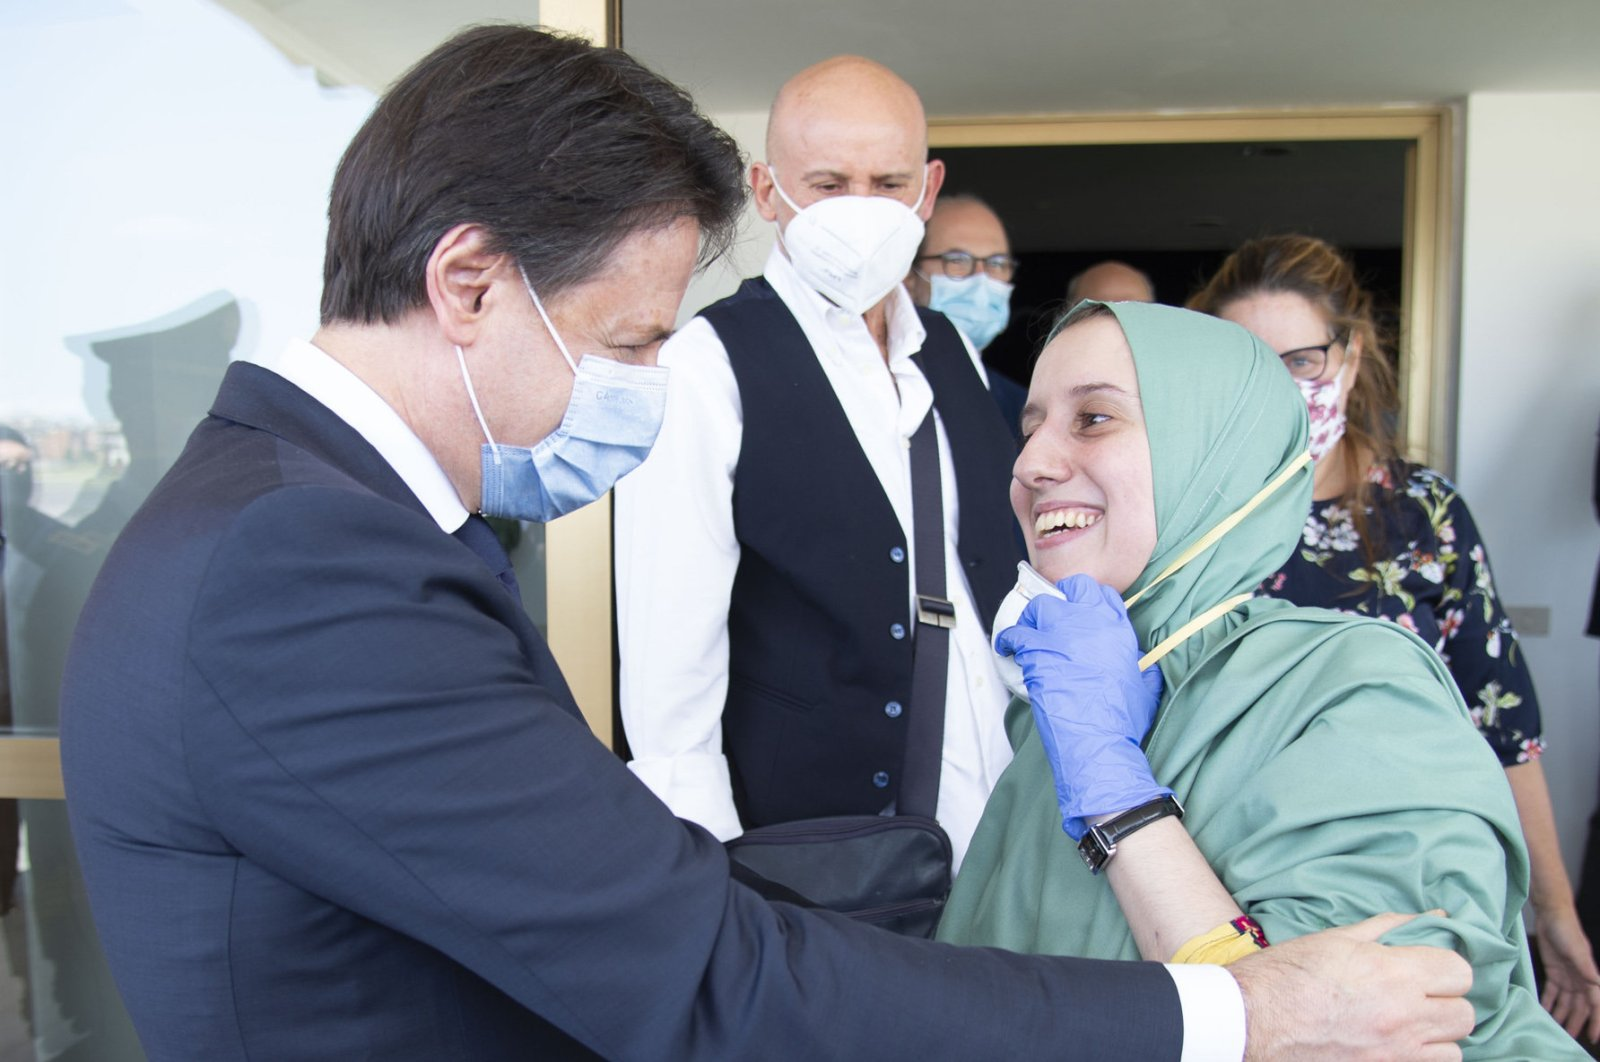 Silvia Romano, who was kidnapped 18 months ago in East Africa, is welcomed by Italian Prime Minister Giuseppe Conte in Rome, May 13, 2020. (AA)